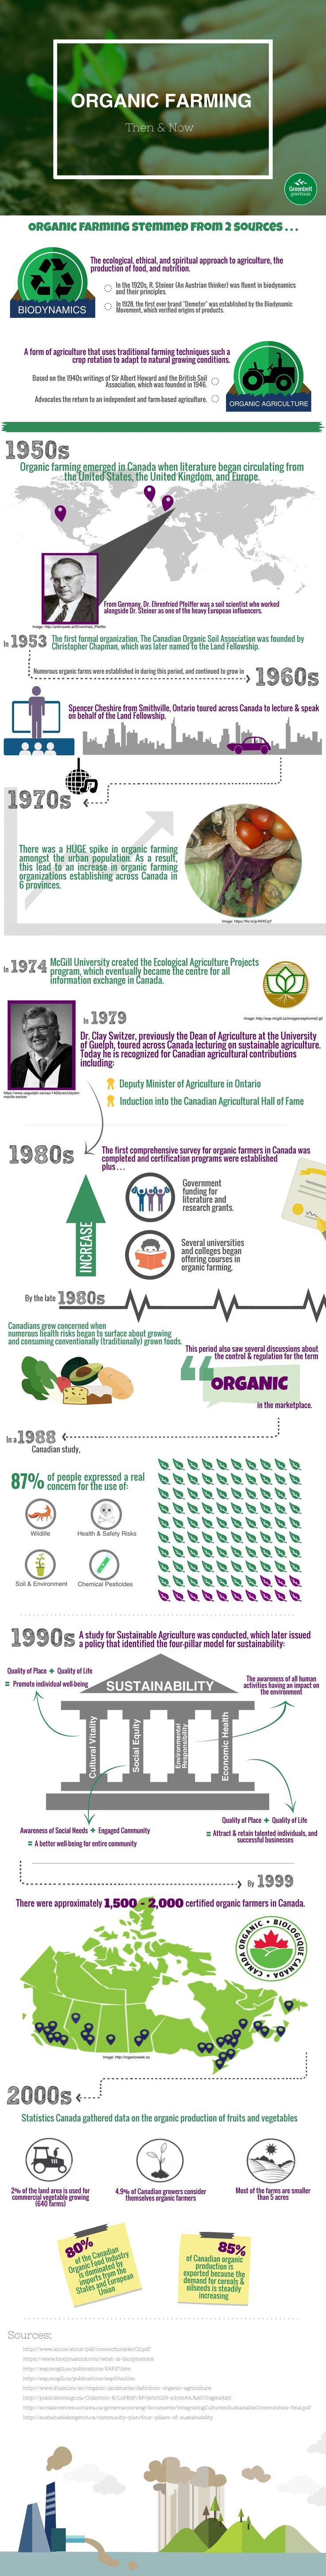 #Organic Farming then & now [infographic]